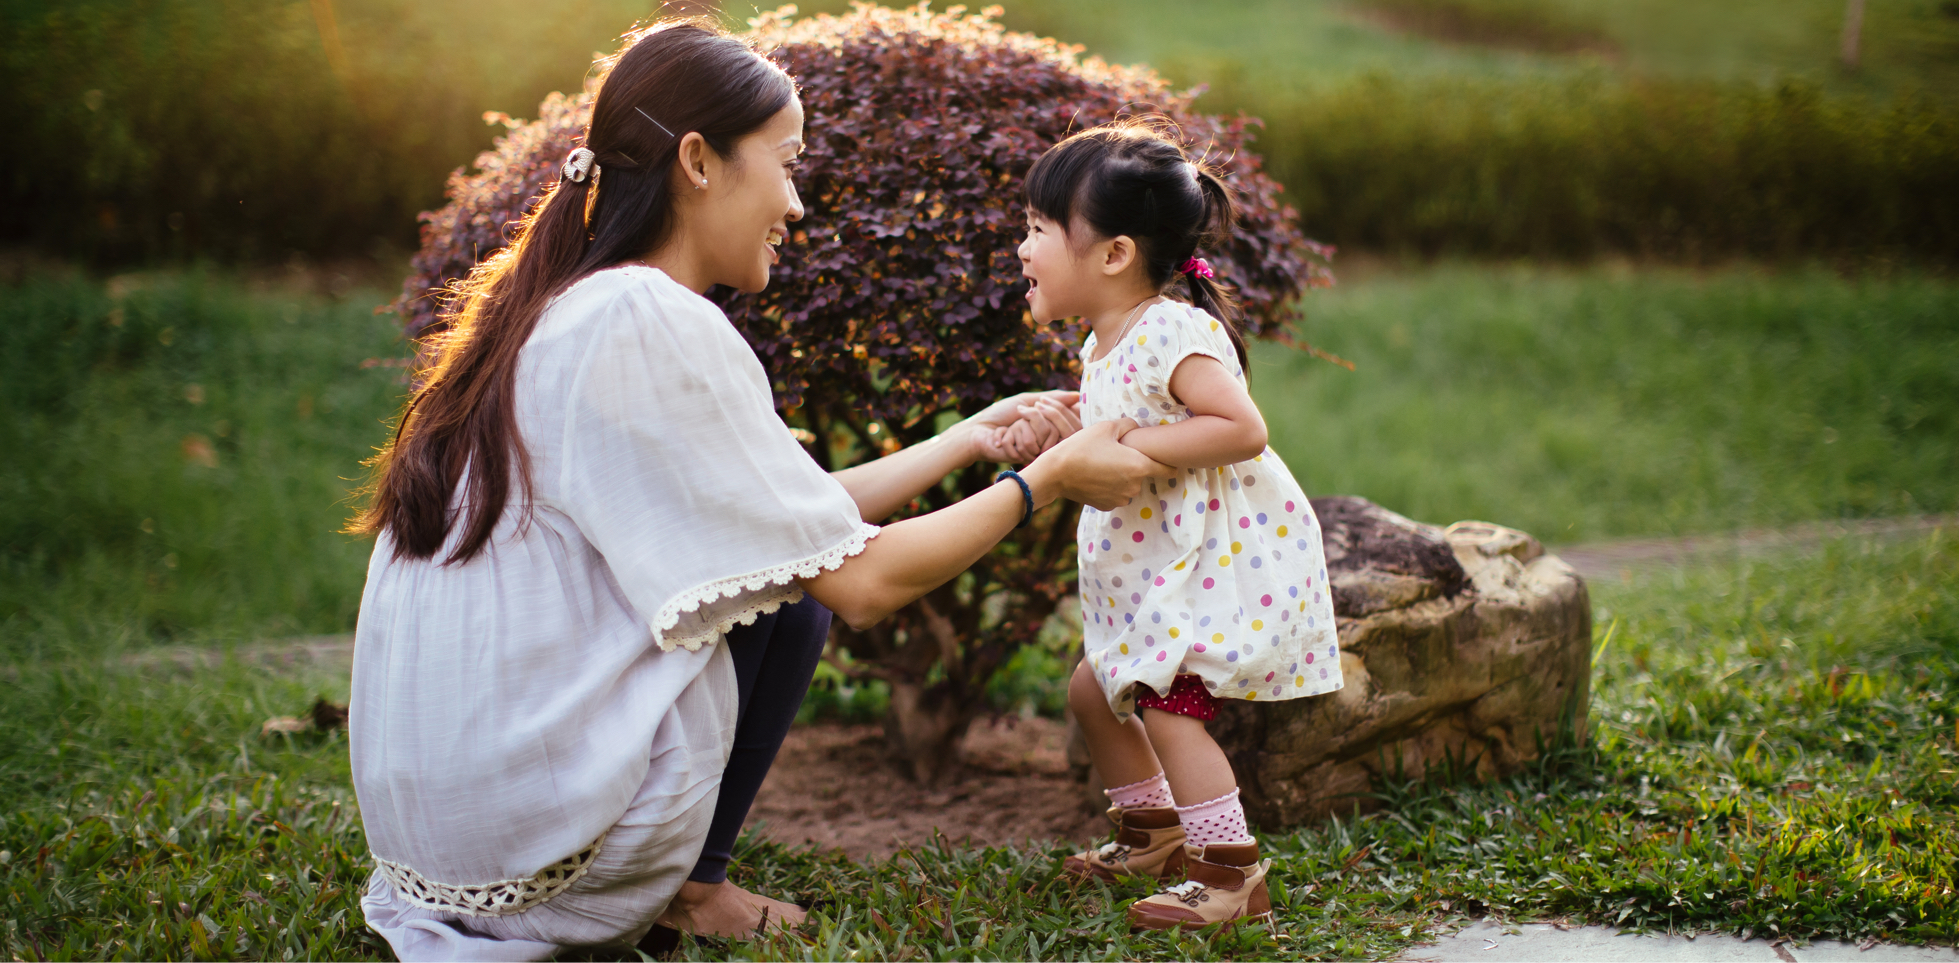 Mother and small child playing in garden